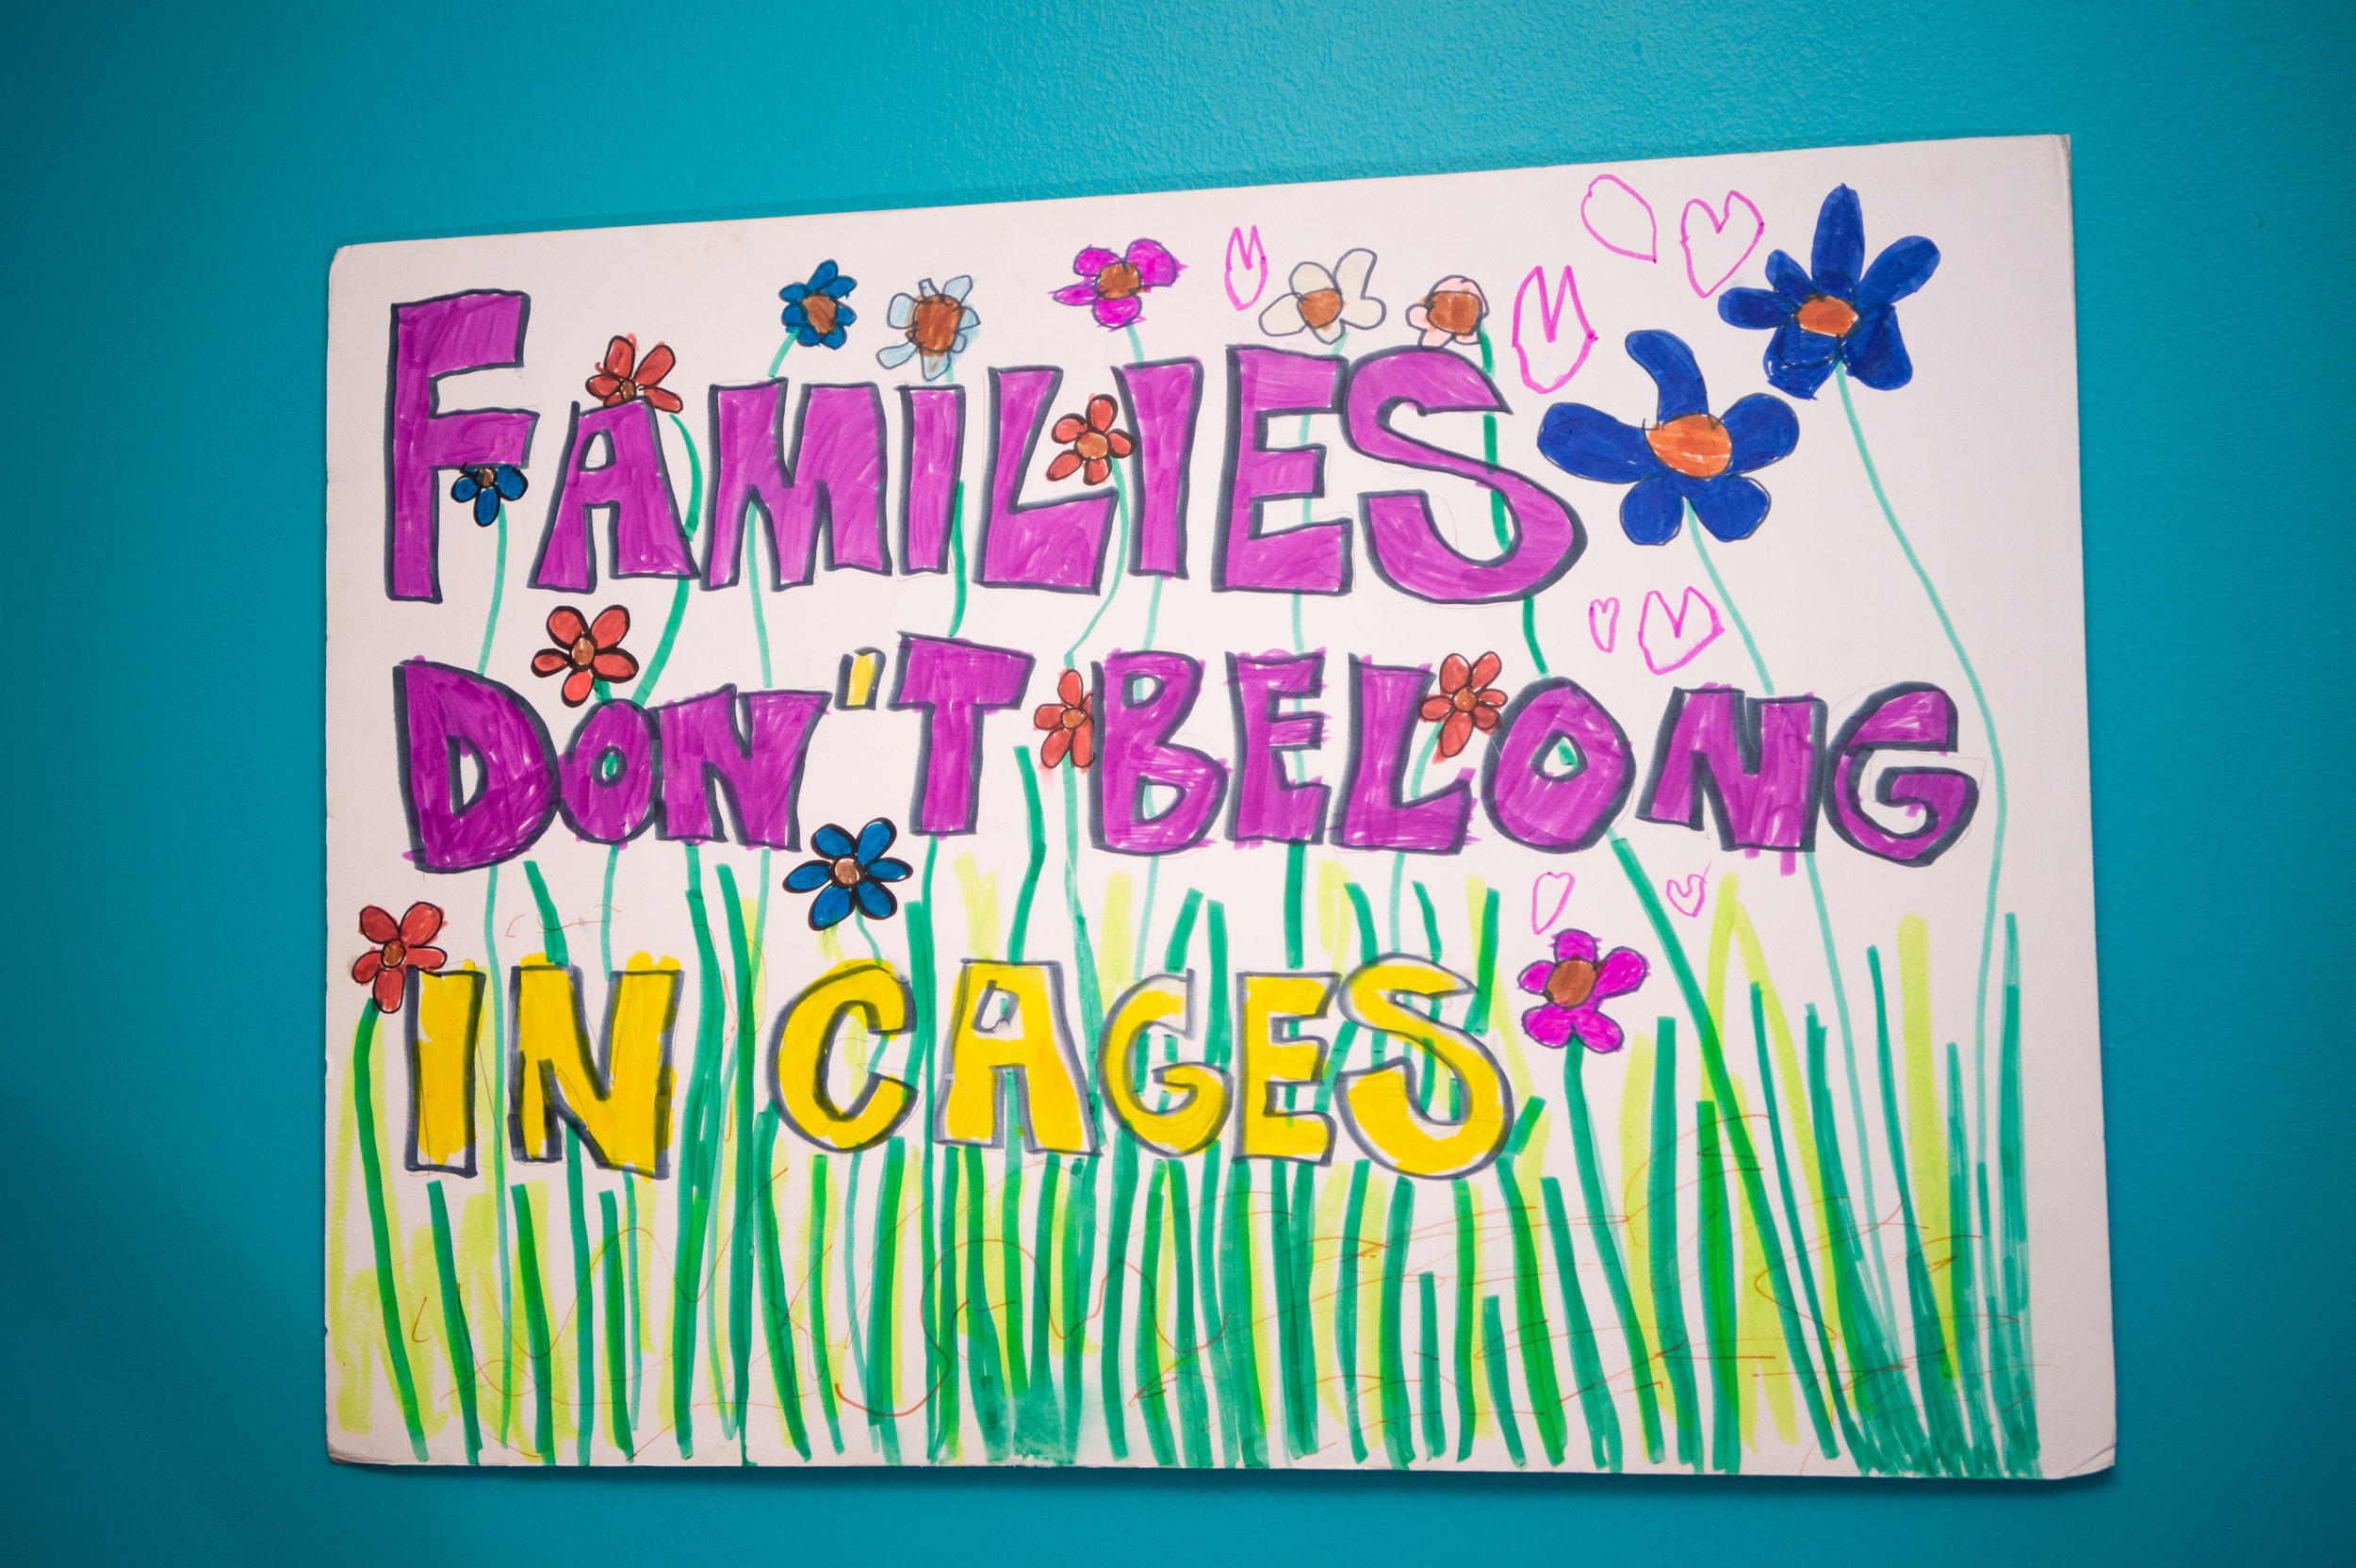 Families don't belong in cages poster